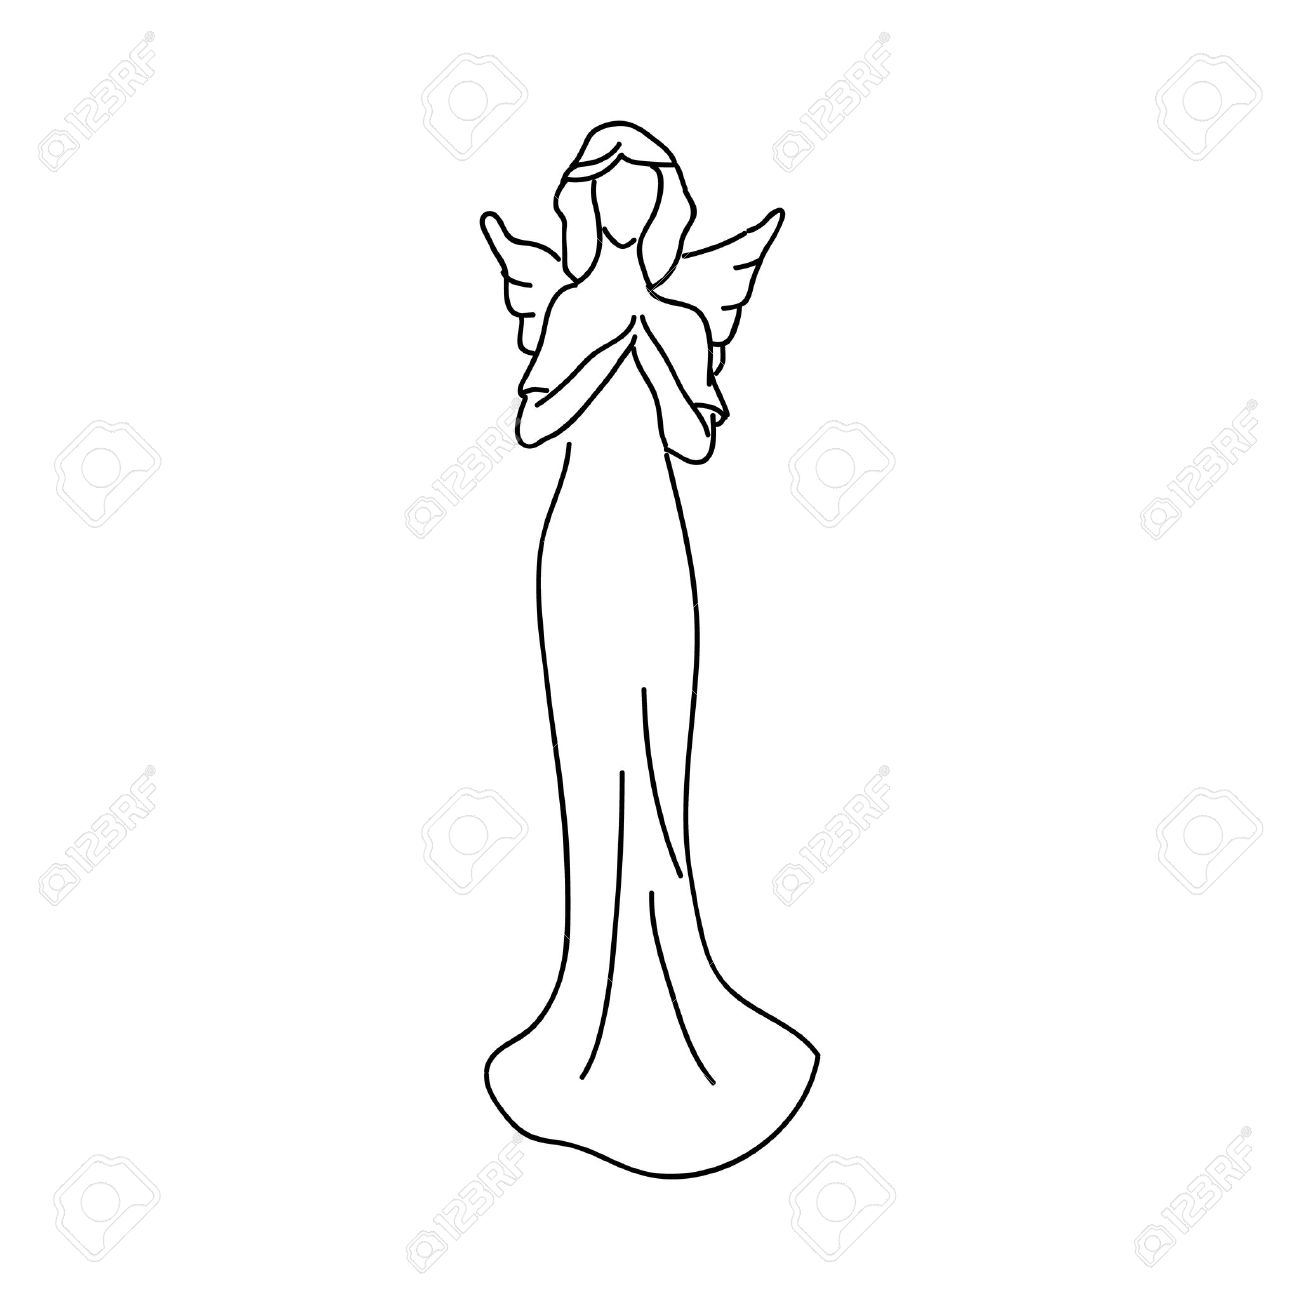 1300x1300 Simple Sketch Of An Angel, A Female Figure With Wings Stock Photo